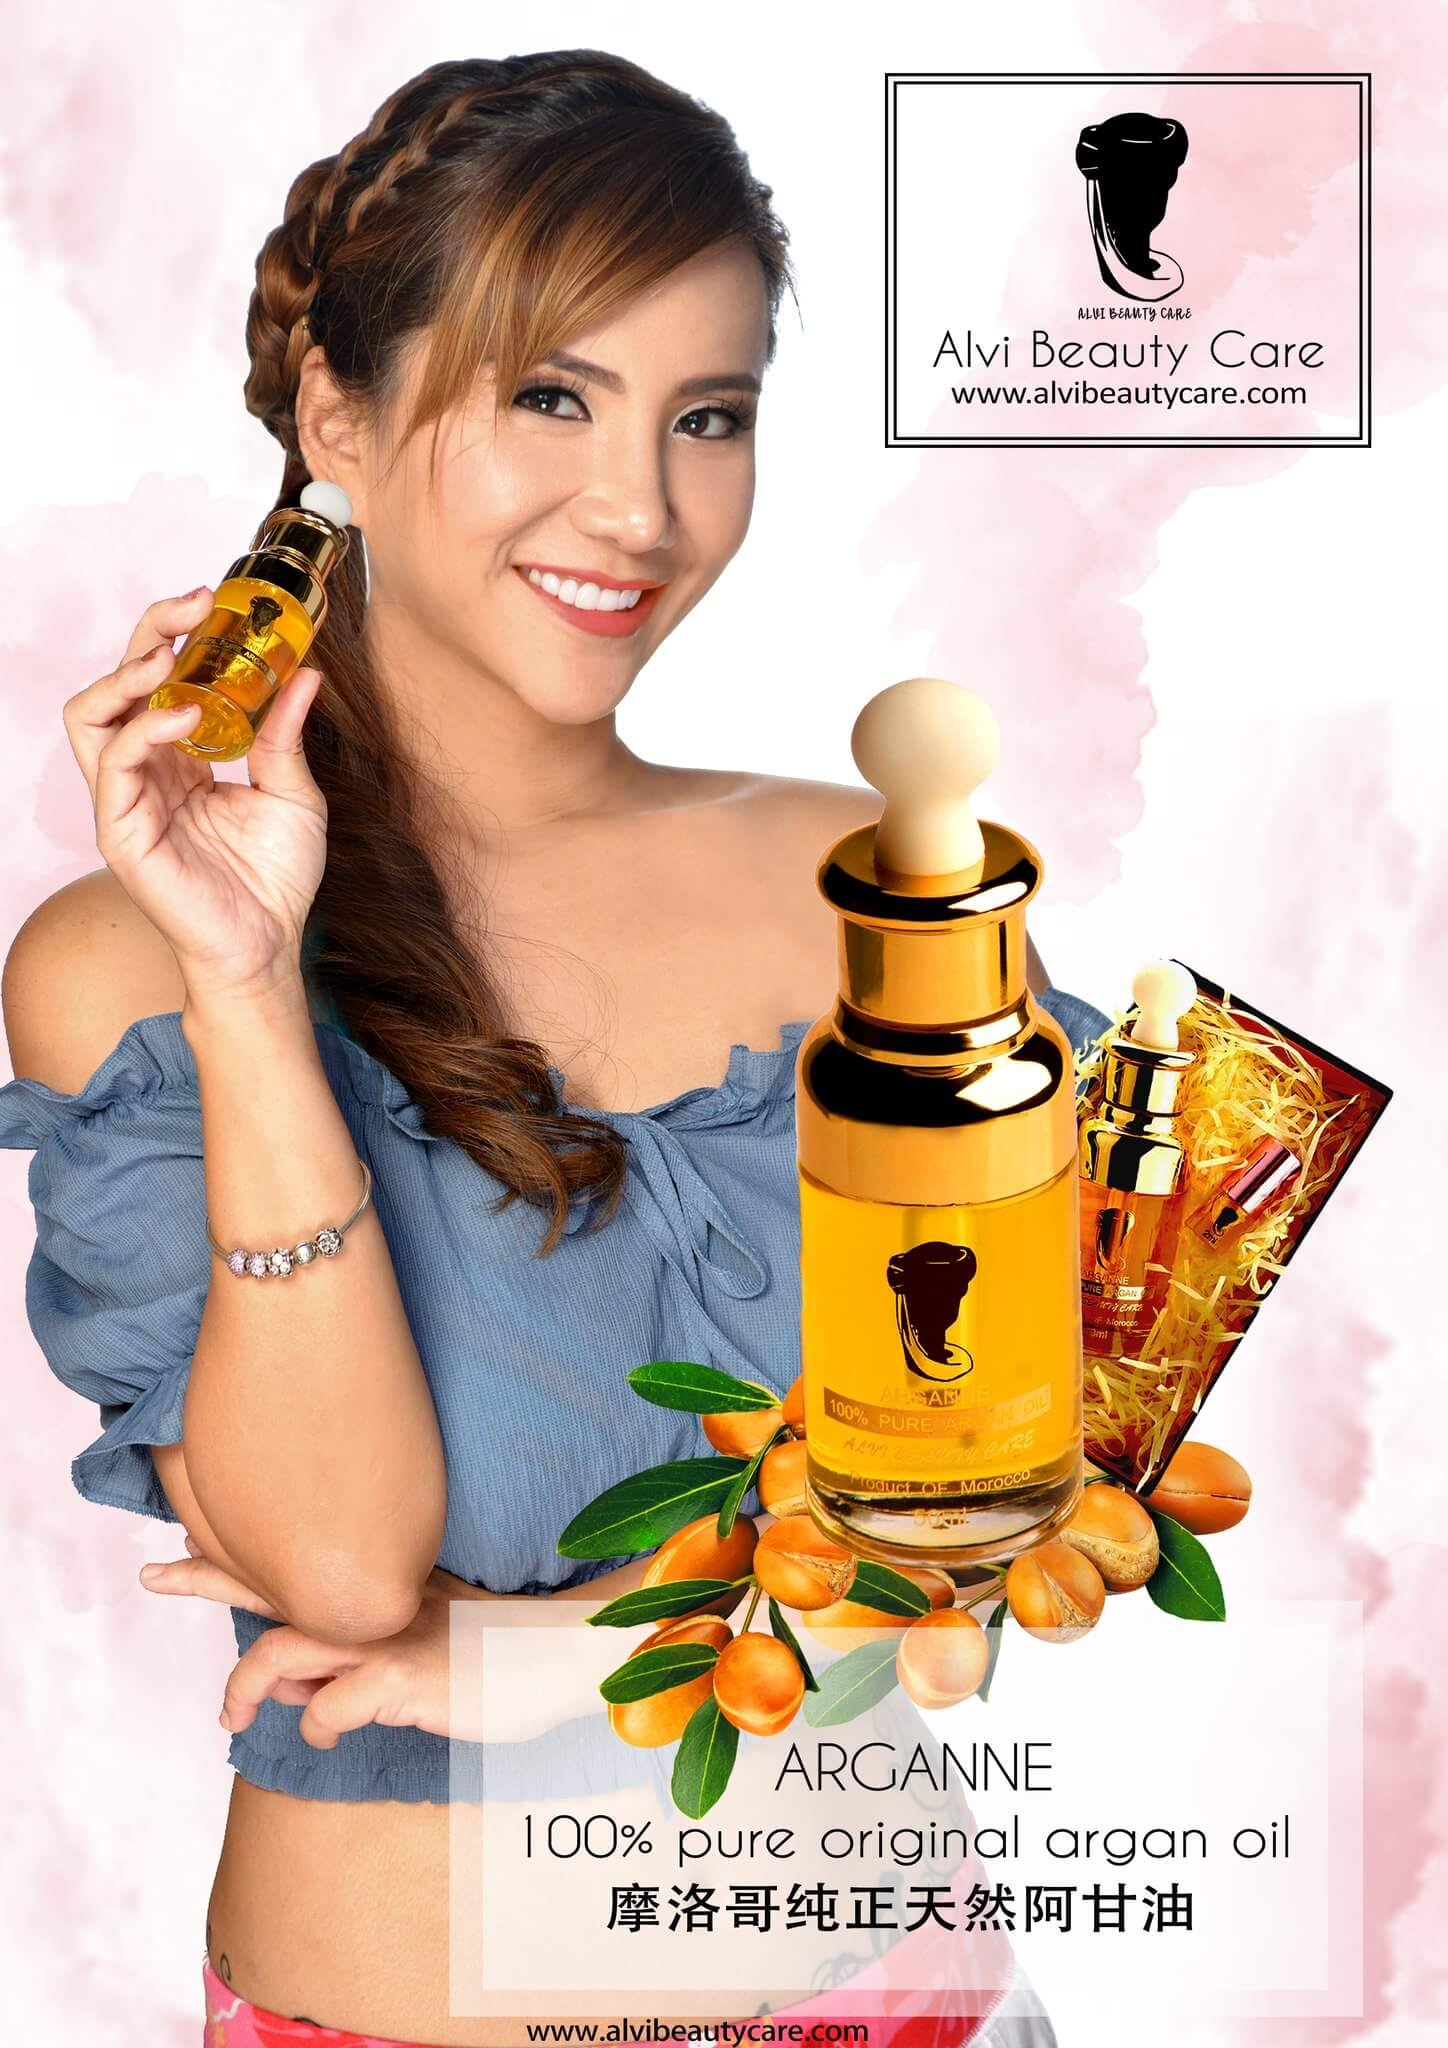 Brand Ambassador Alvi Tan (LV Tan) holding a bottle of Arganne 100% Pure Argan Oil, Malaysia, buy argan oil malaysia, argan oil online, best argan oil, best argan oil for skin, argan oil ingredients, amazing benefits of Arganne 100% Pure Argan Oil, imported from Morocco